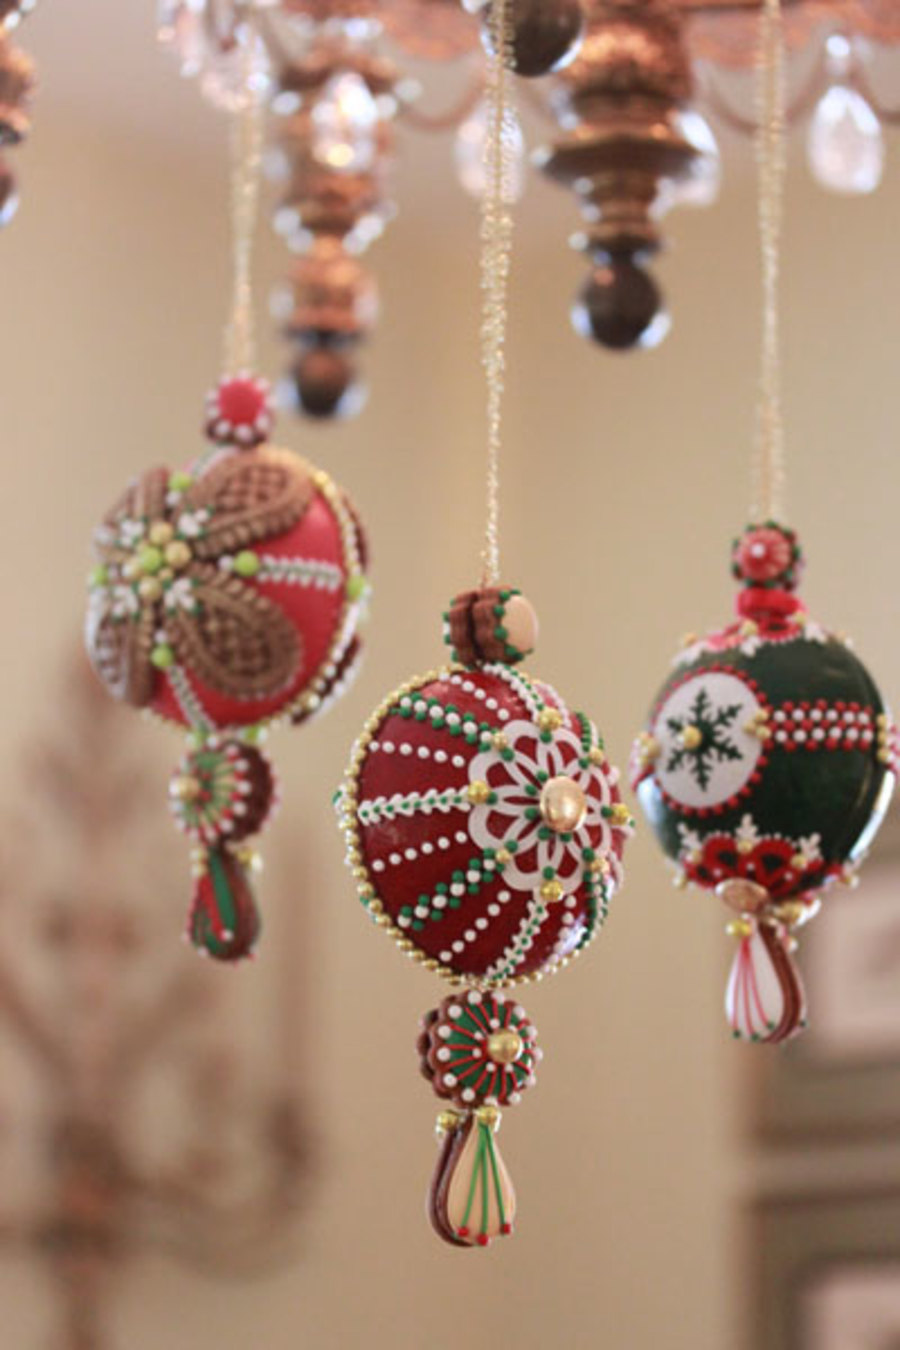 Cookie ornaments hanging from my chandelier for Hanging ornaments from chandelier